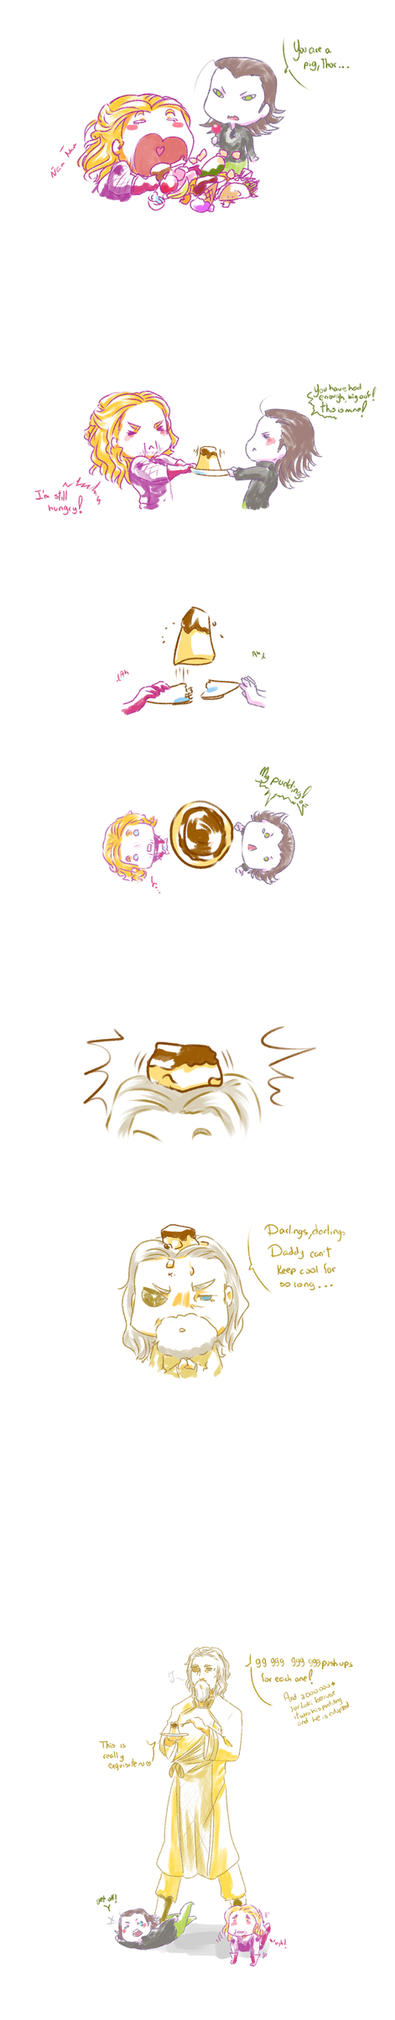 Thor, you sure love food by MicoSol